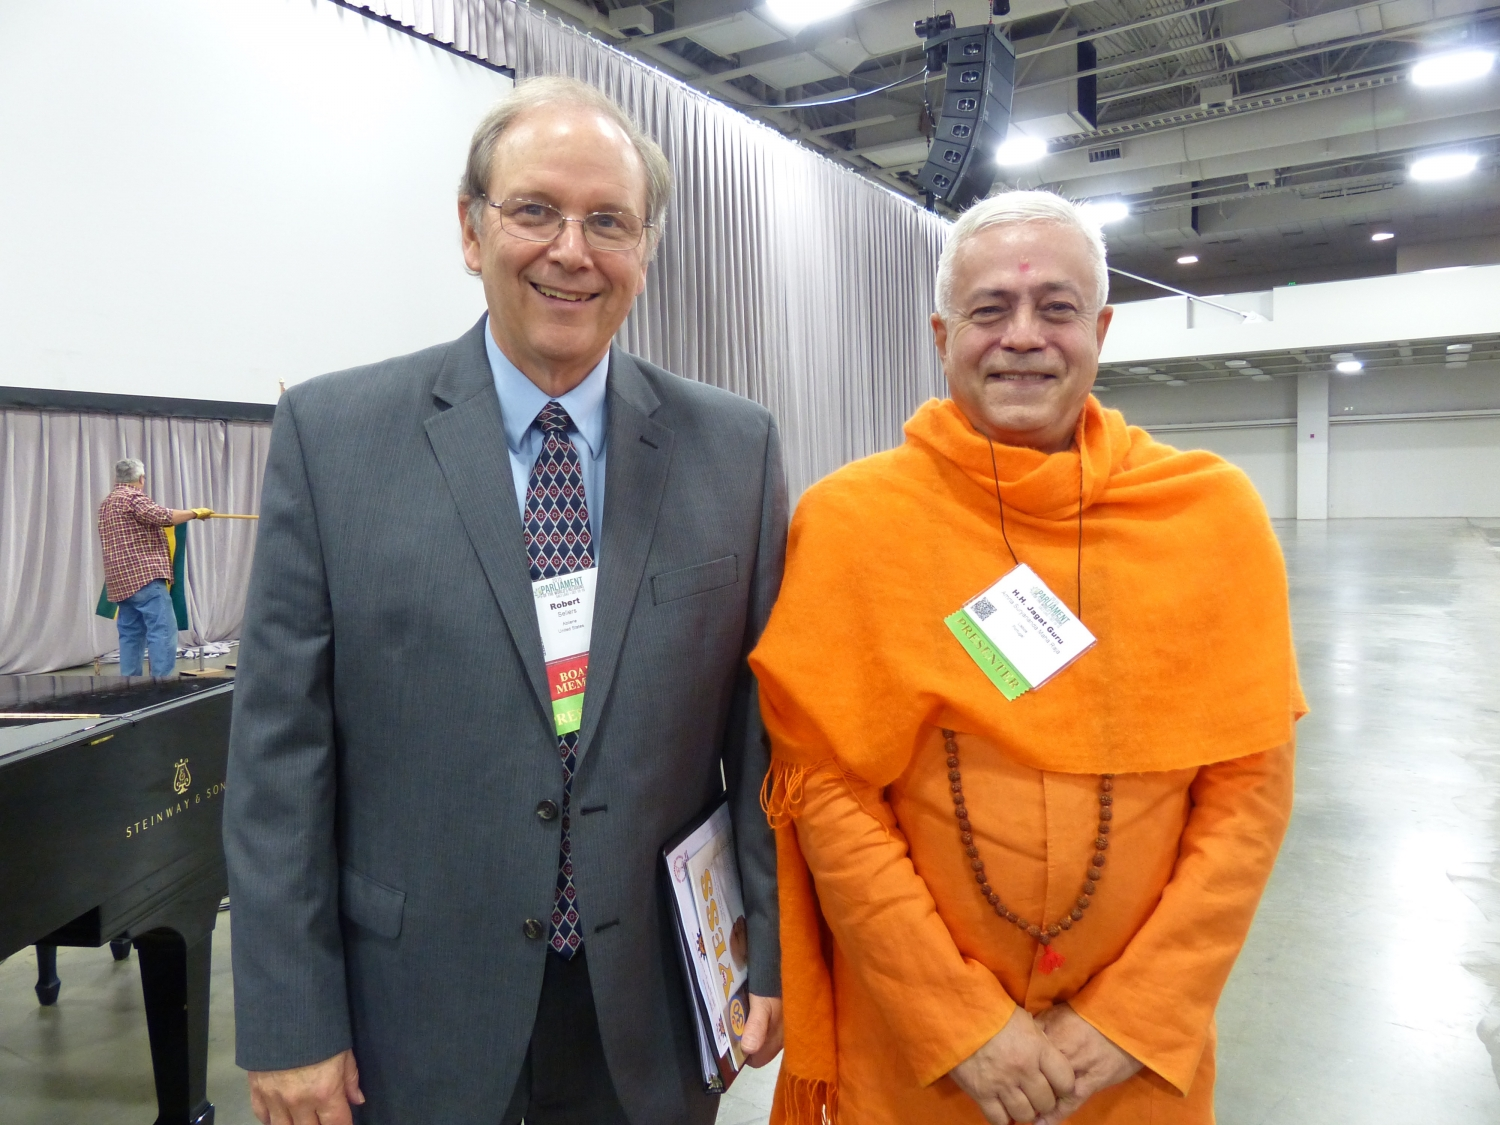 Com Robert Preston Sellers, próximo organizador do Parliament of the World's Religions